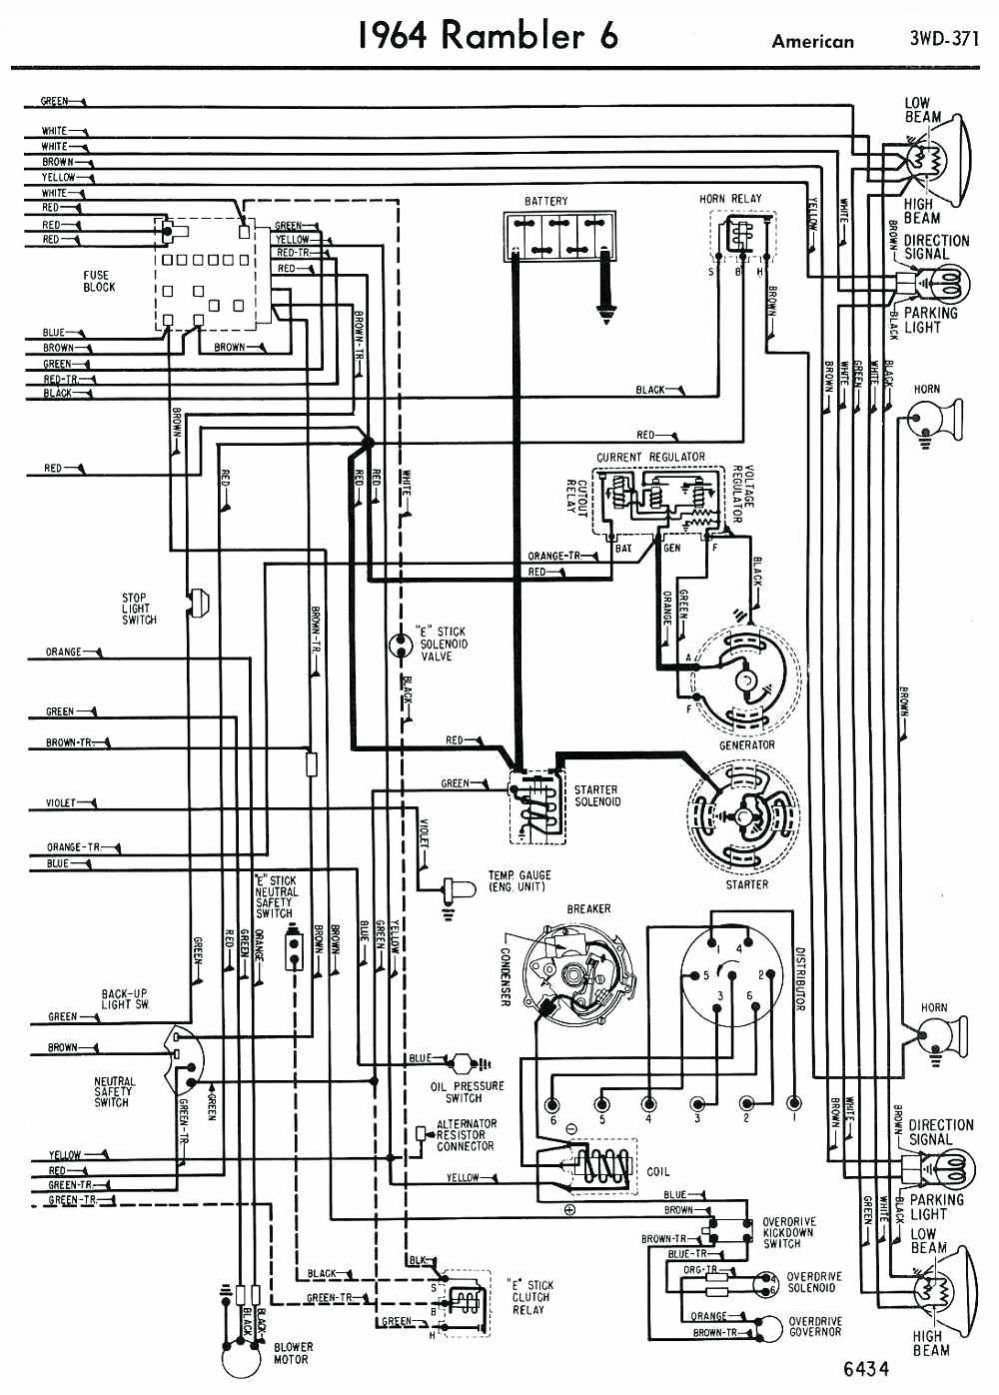 hight resolution of white rodgers 24a01g 3 wiring diagram white rodgers 24a01g 3 wiring diagram awesome wonderful wiring